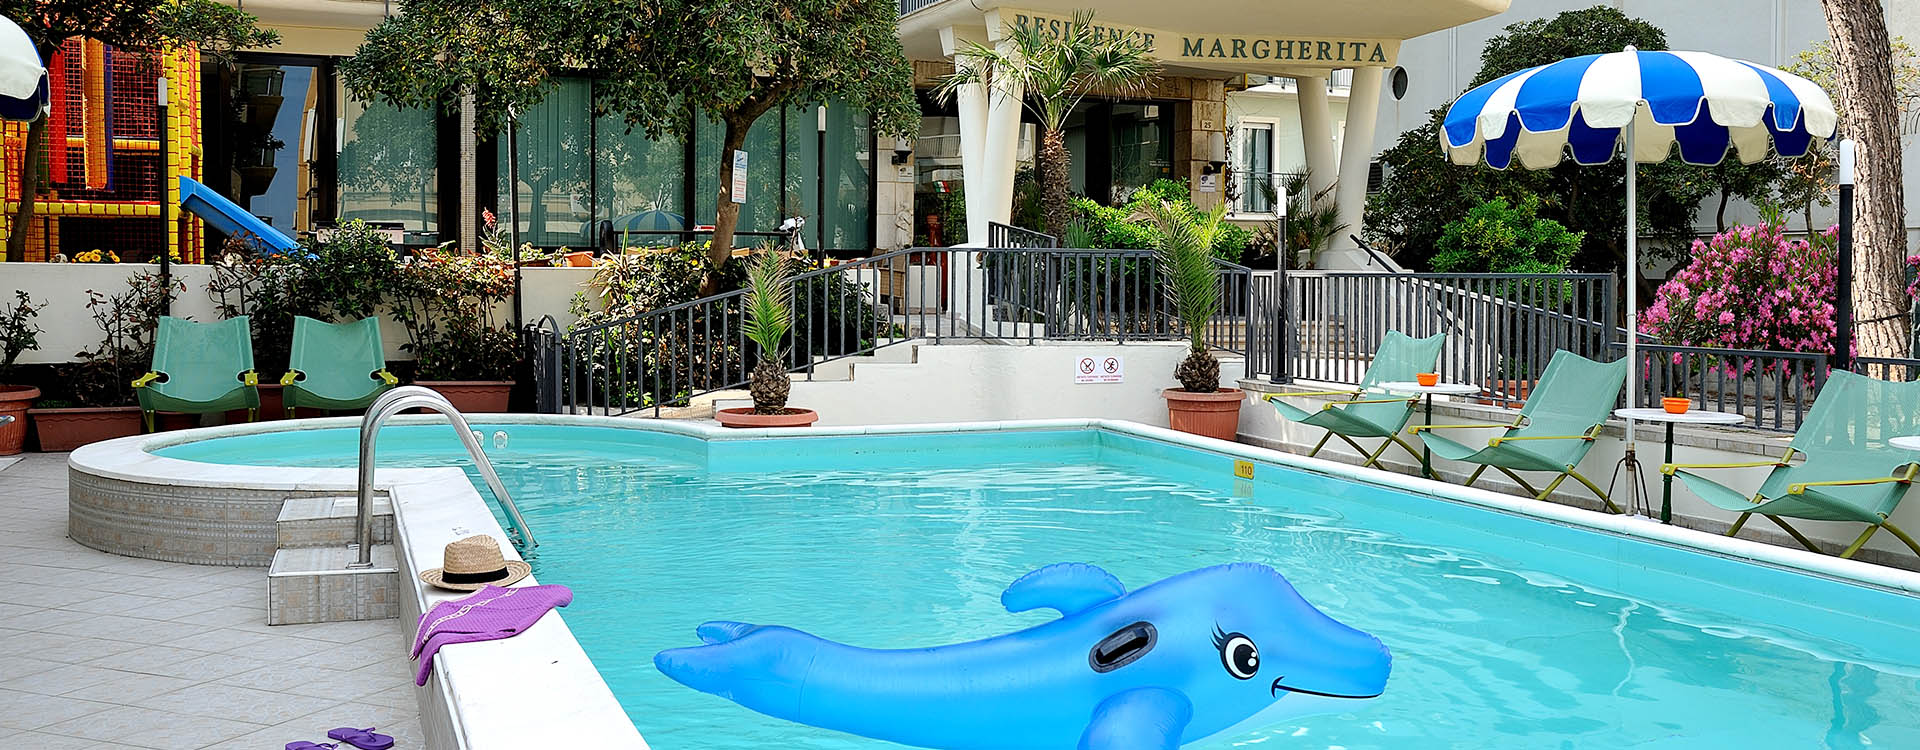 Residence cattolica con piscina residence turistici - Residence cattolica con piscina ...